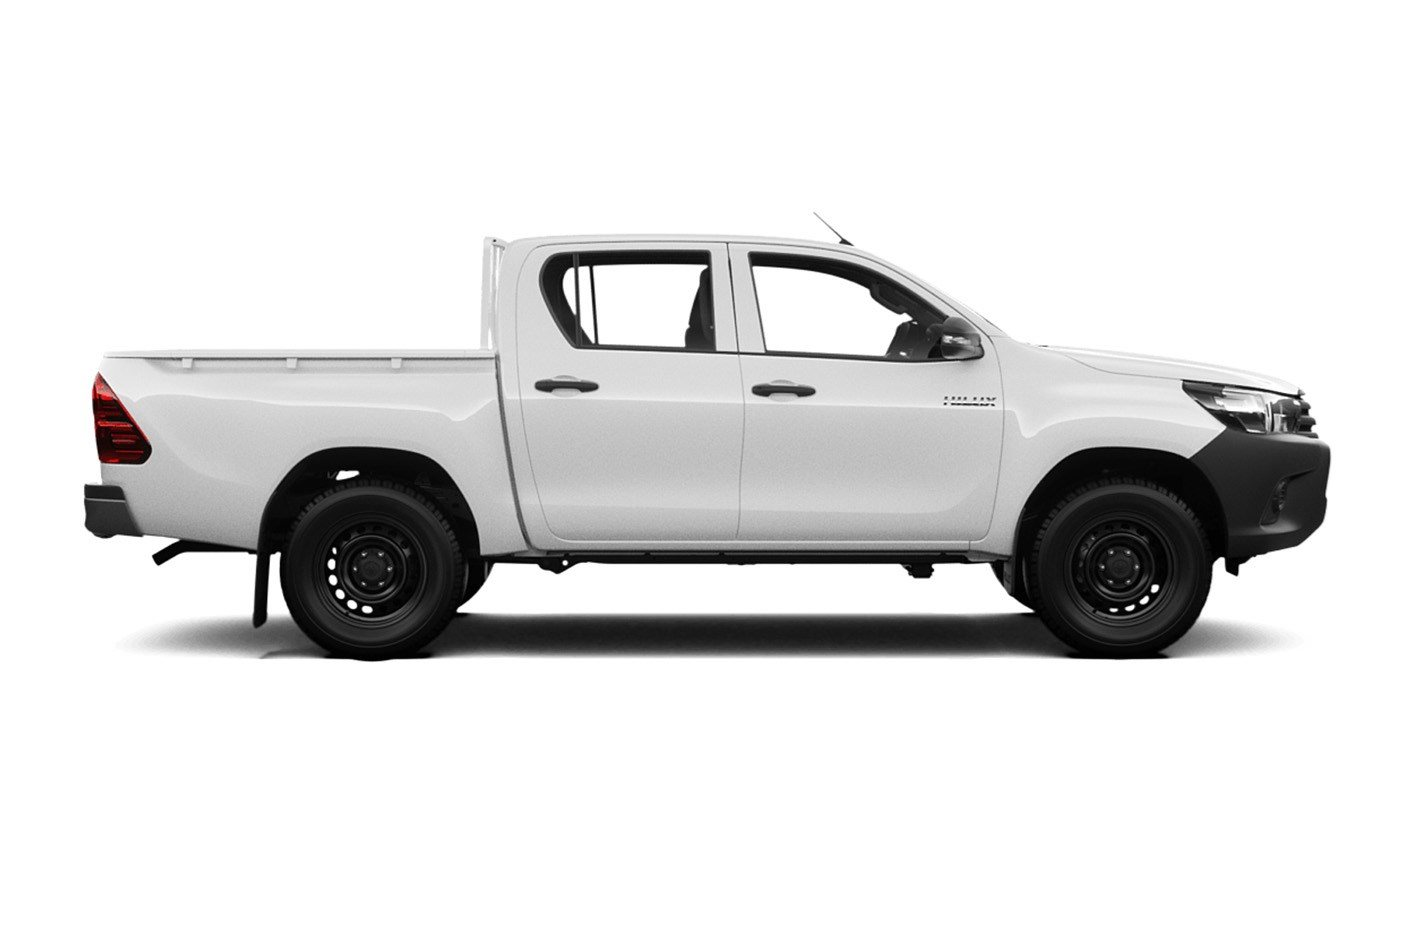 Toyota HiLux | Reviews, price and specs on all variations